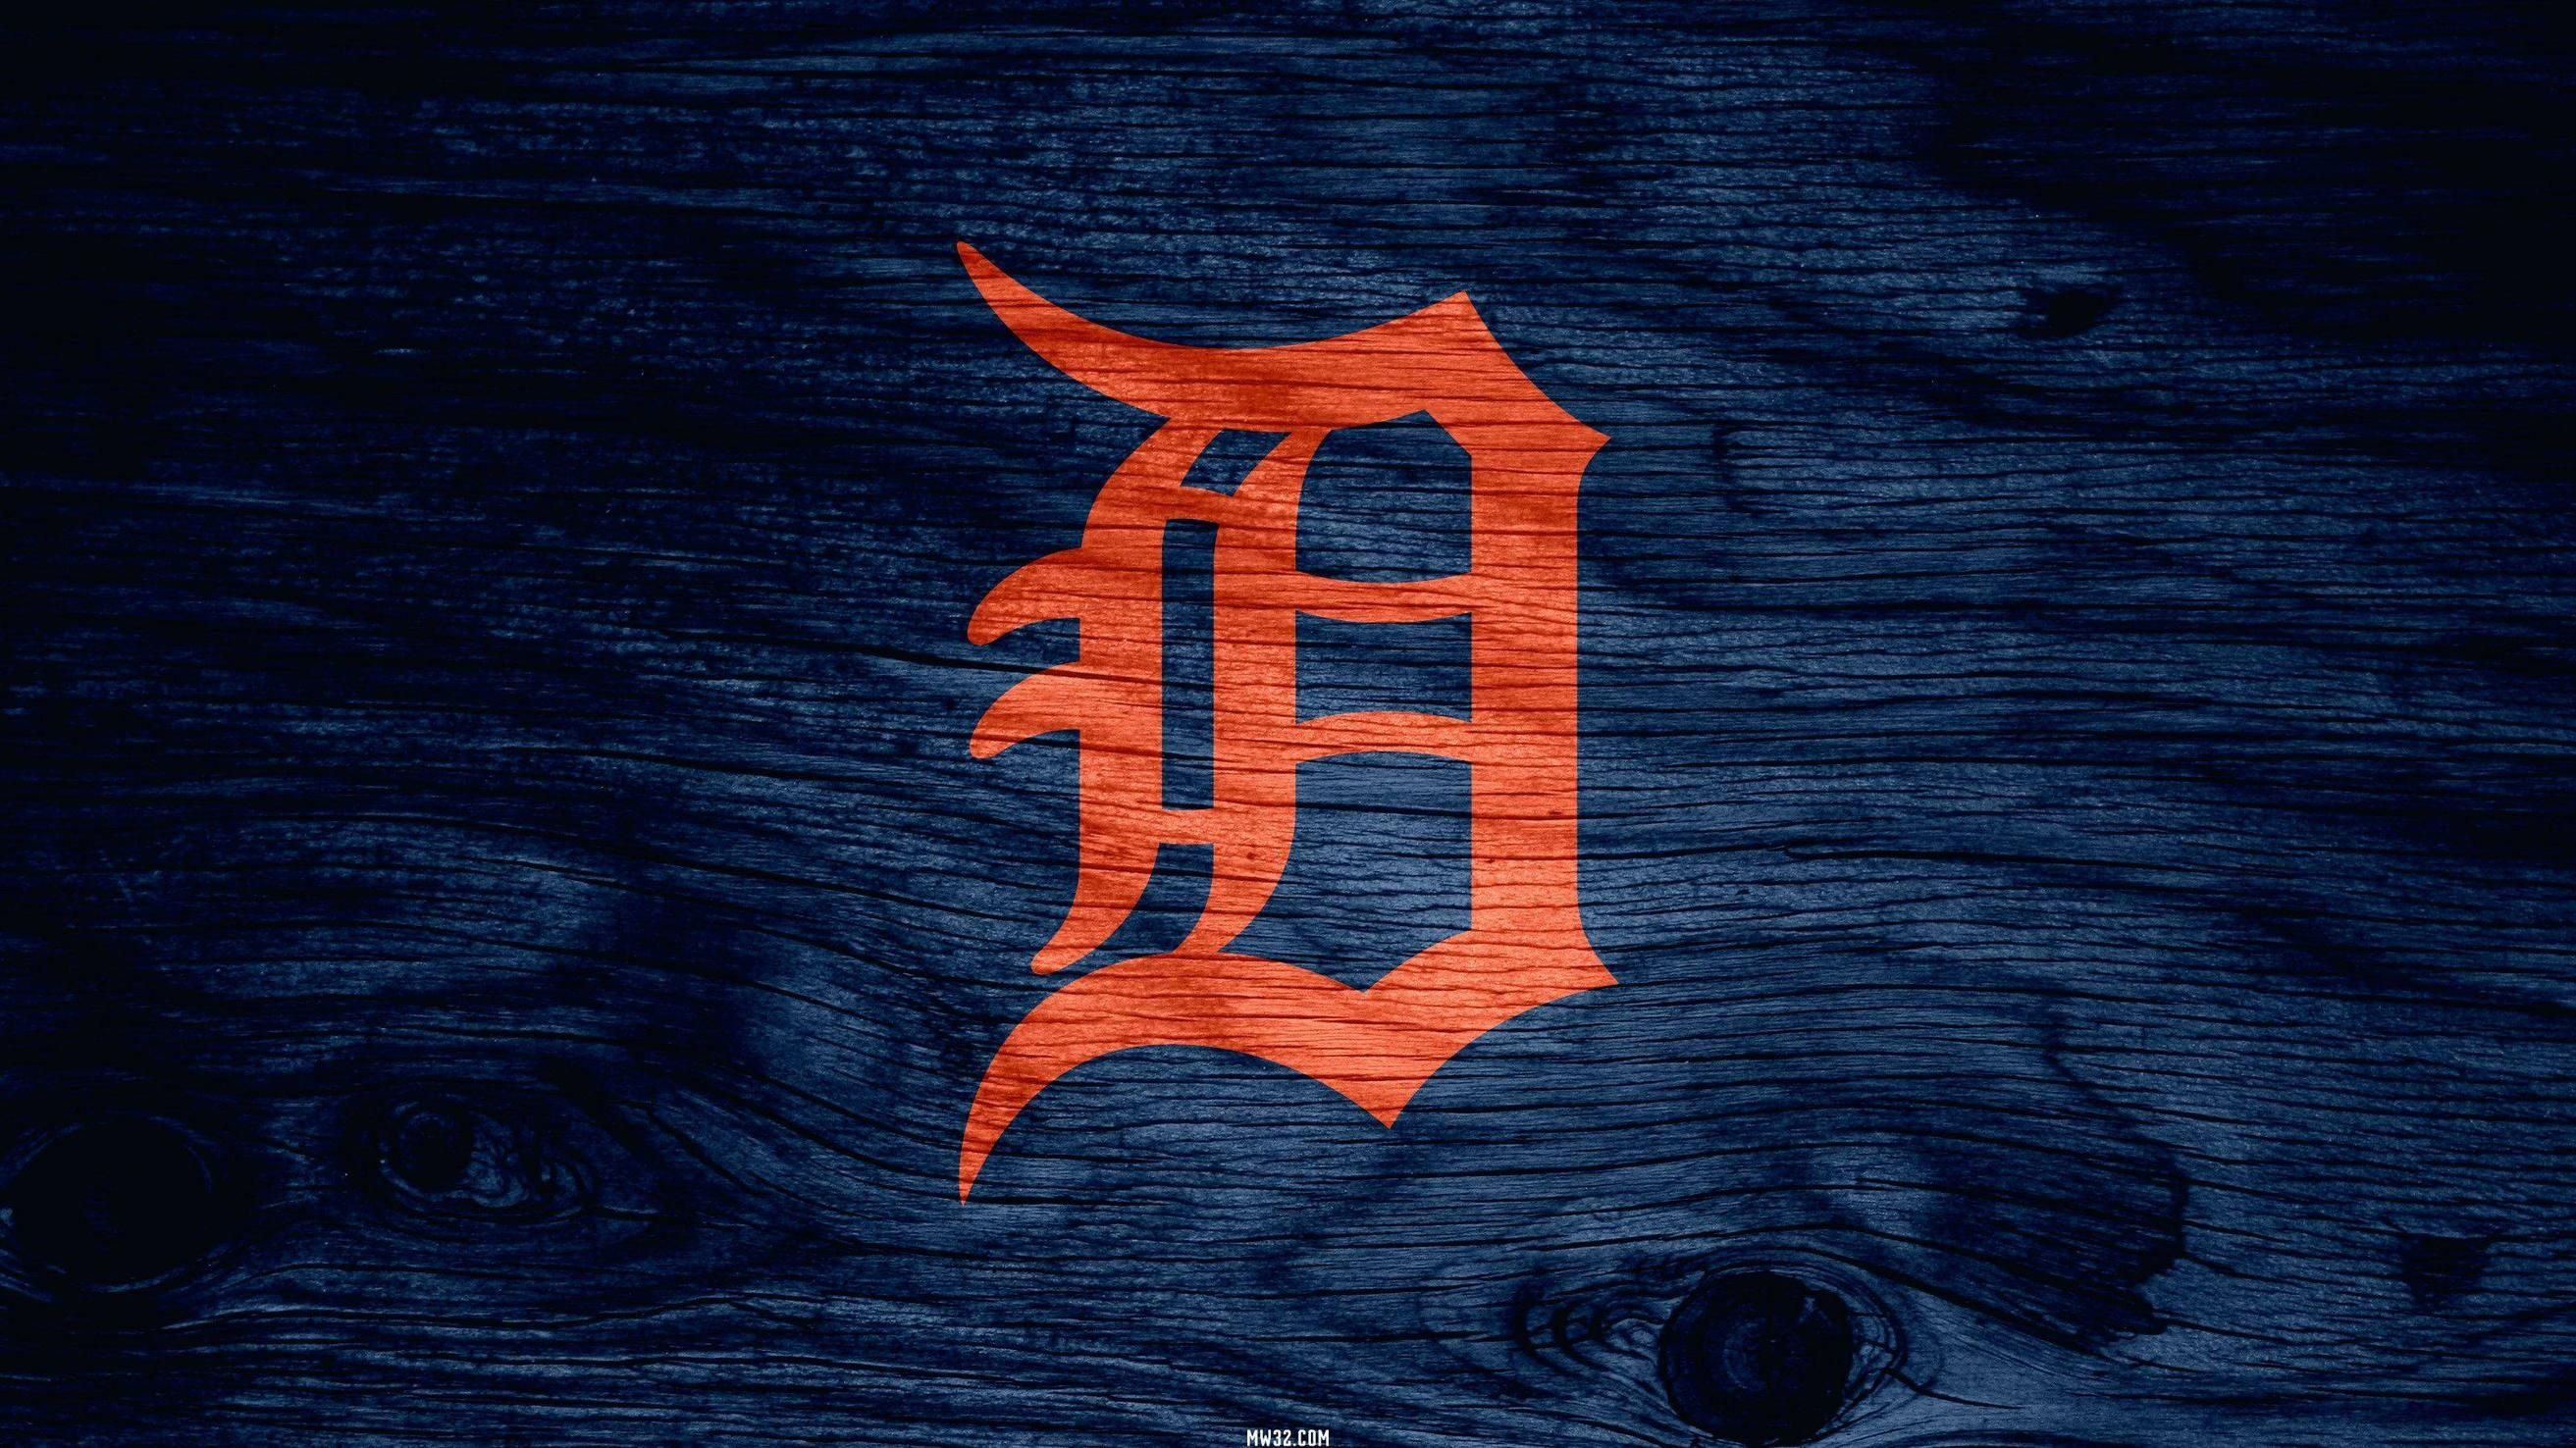 Detroit Tigers Wallpaper Hd Widescreen 11 Detroit Tigers Tiger Wallpaper Detroit Logo